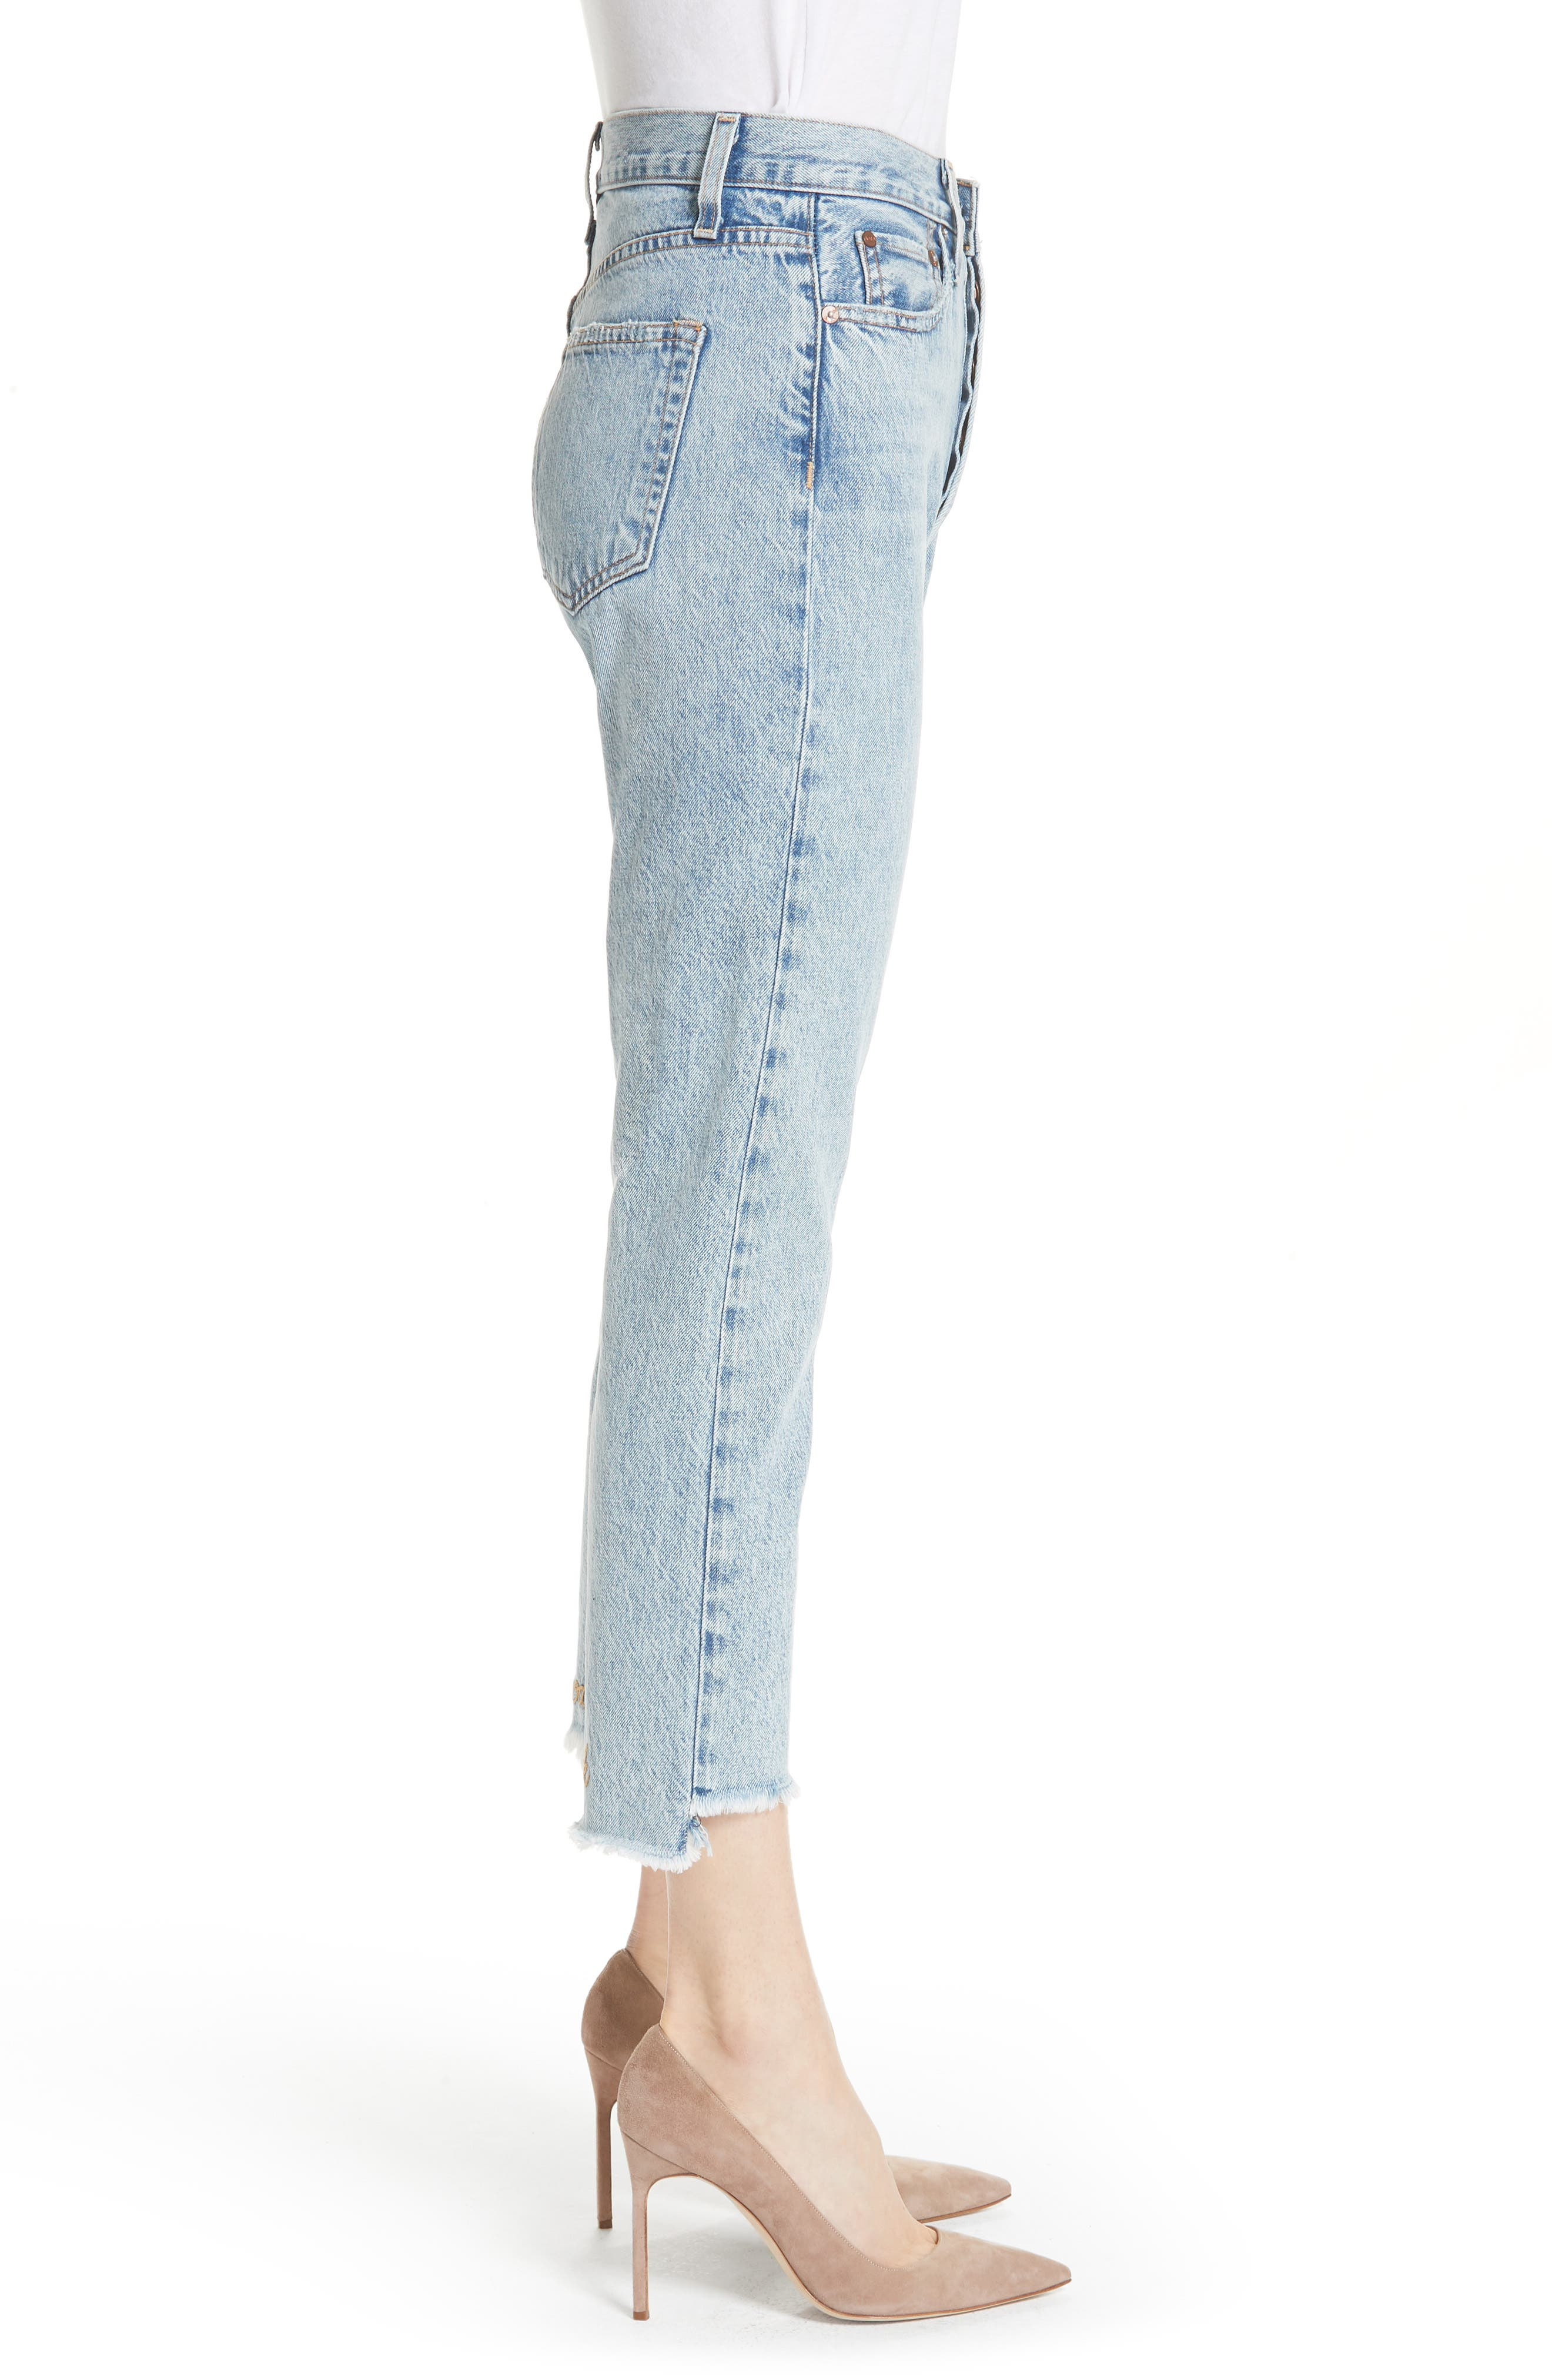 AO.LA Amazing Good Luck Slim Girlfriend Jeans,                             Alternate thumbnail 3, color,                             Out Of Sight/ Gold